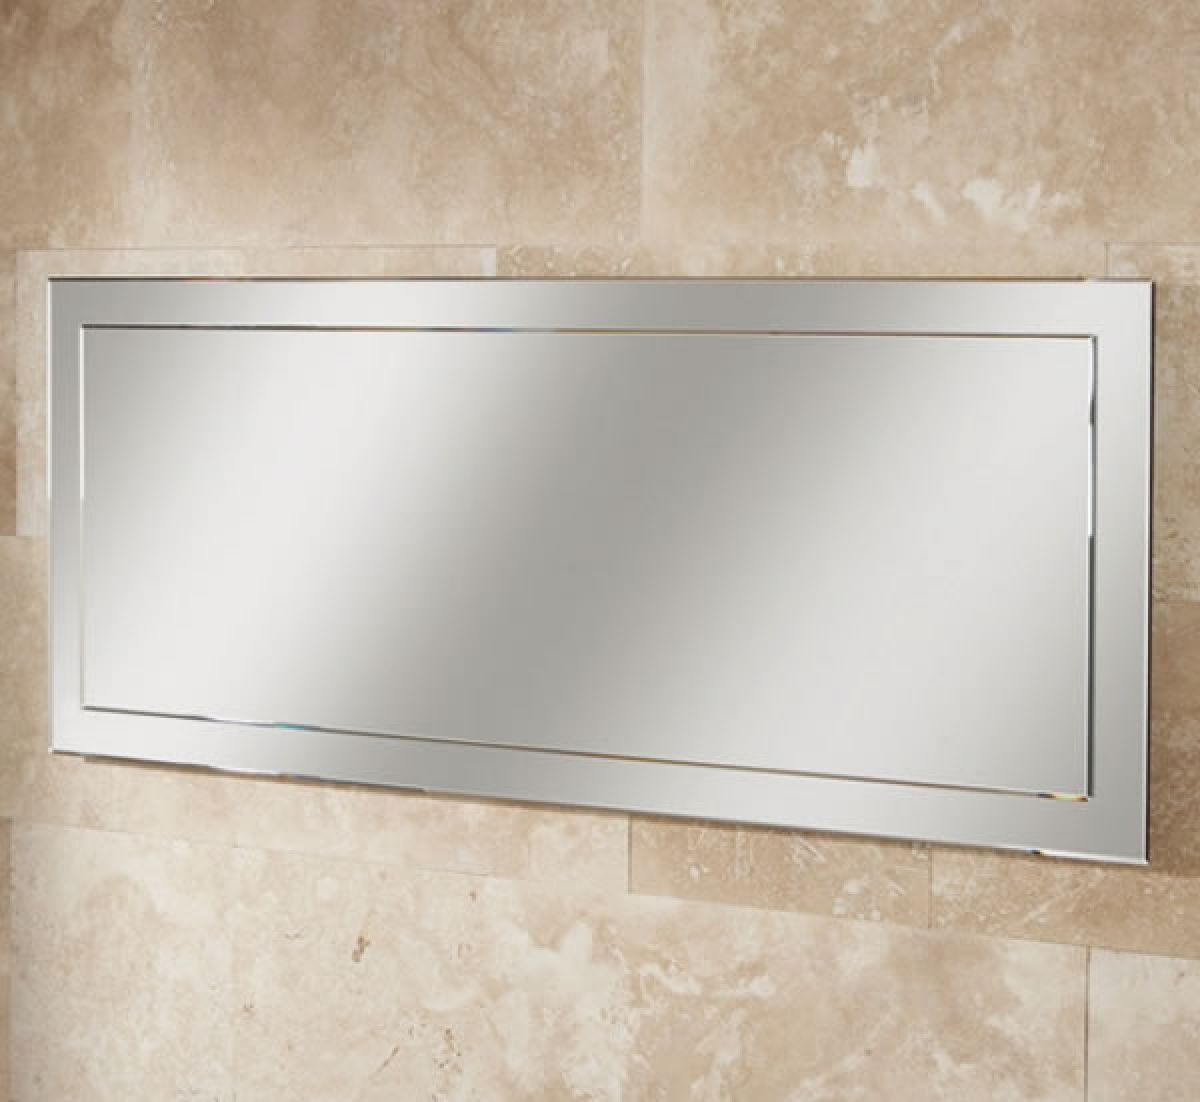 Hib isis large bathroom mirror uk bathrooms for Bathroom wall mirrors large